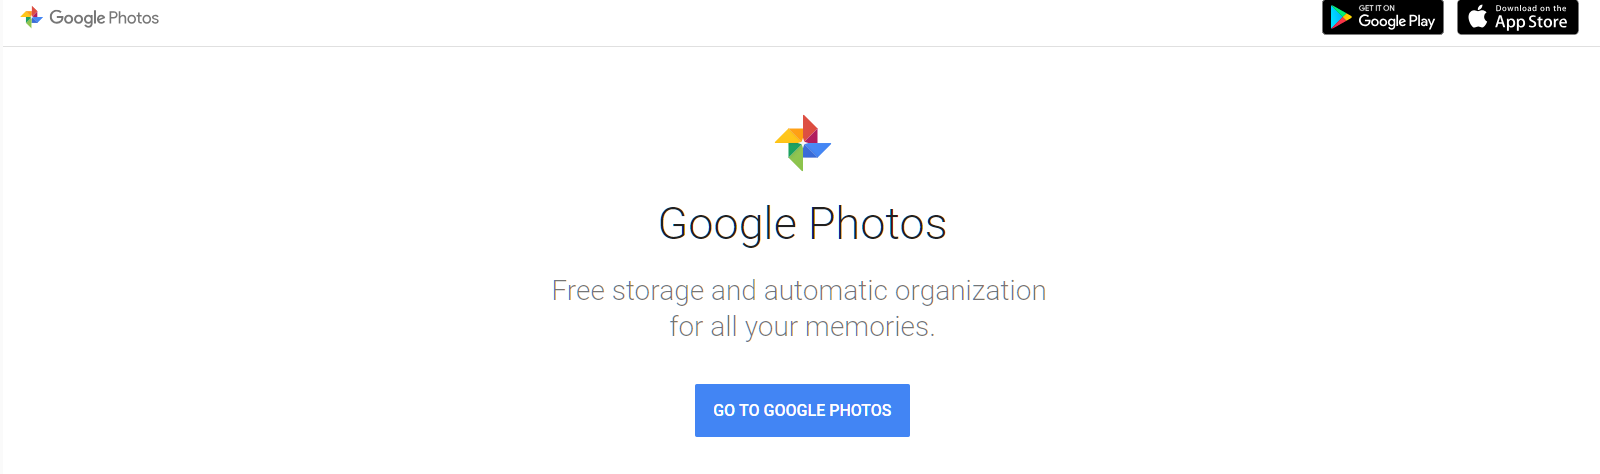 Google Photos - All your photos organized and easy to find